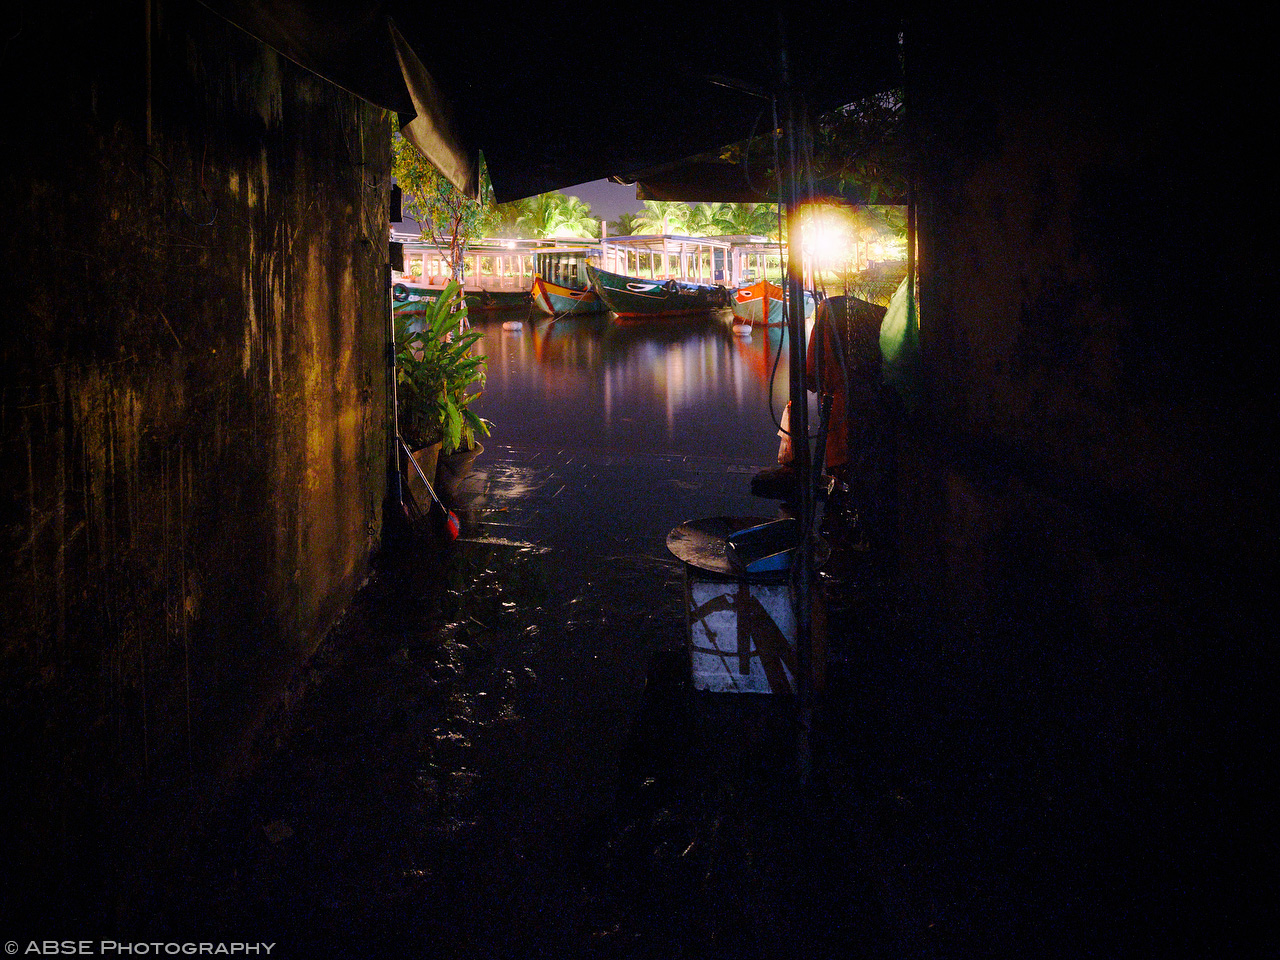 IMAGE: http://blog.absephotography.com/wp-content/uploads/2017/09/hoian-hoi-an-vietnam-water-flood-light-night-shot-long-exposure-3.jpg